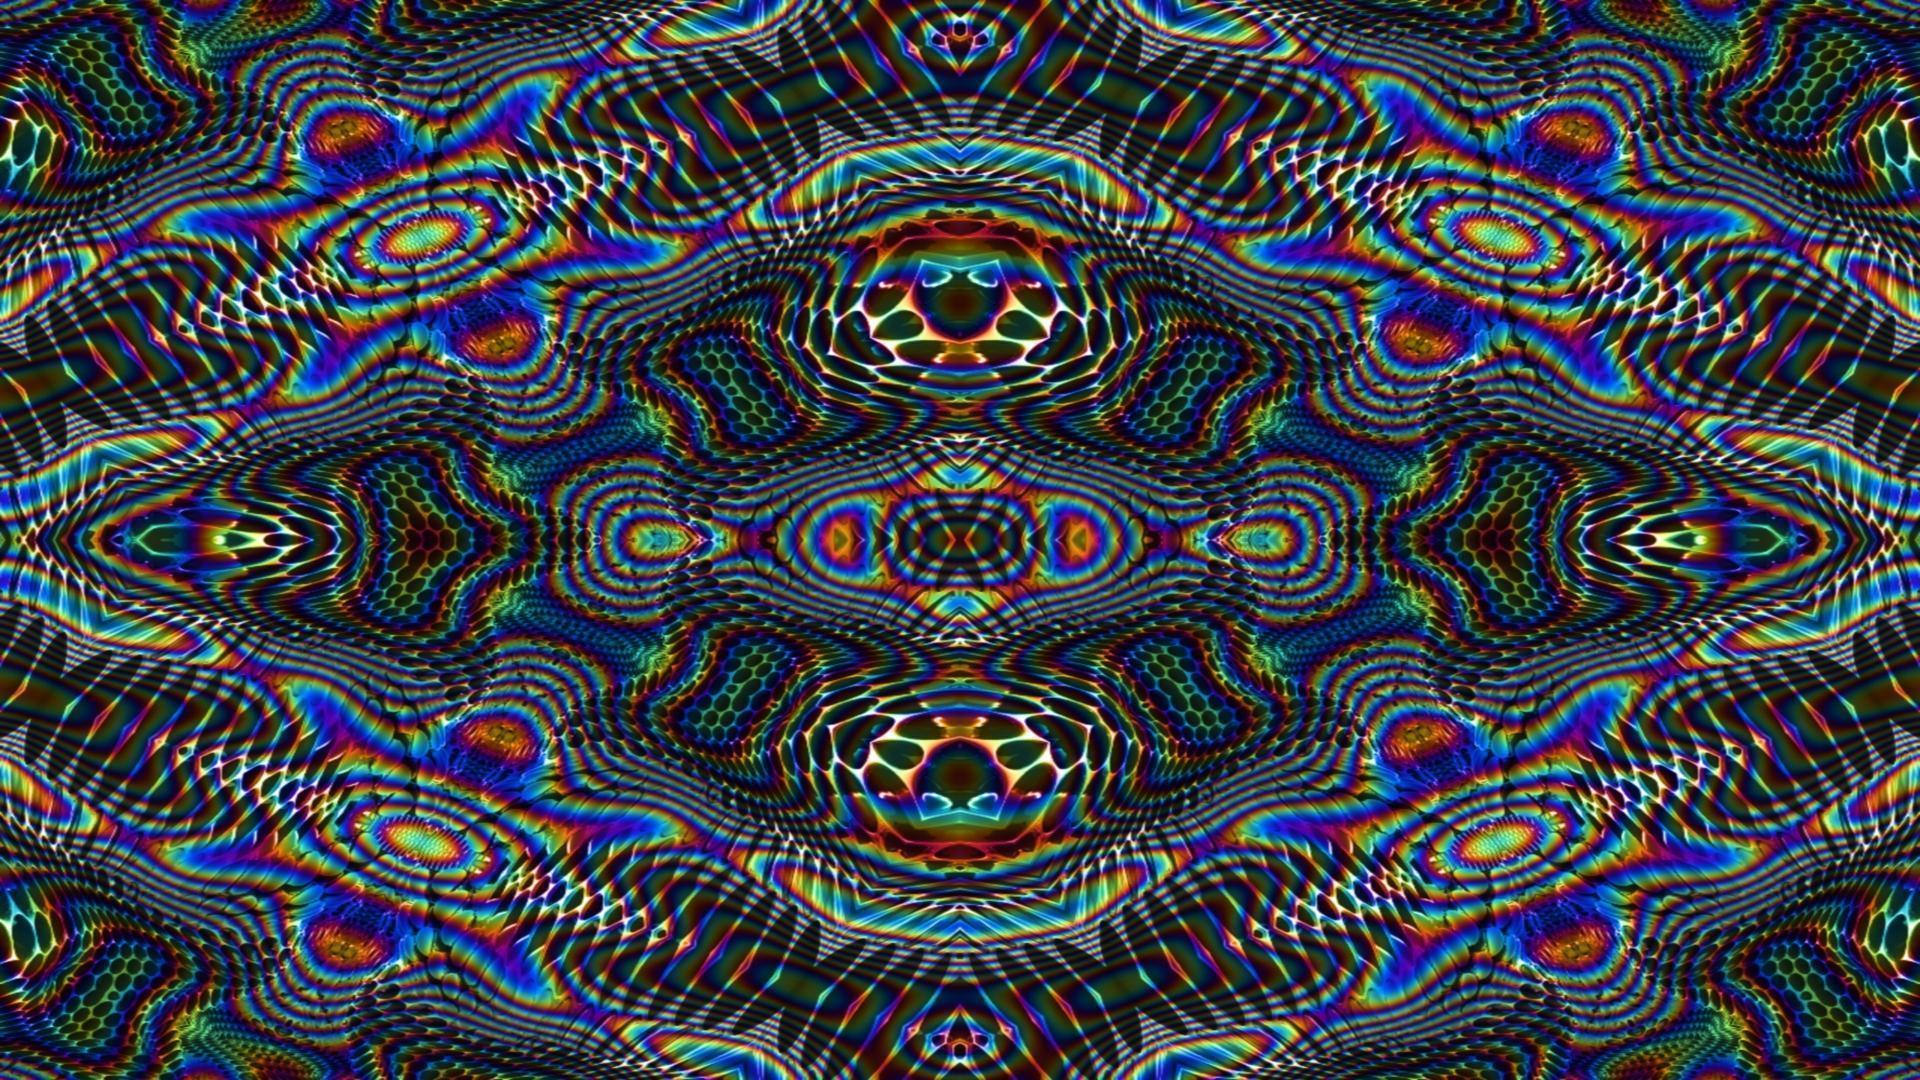 psychedelic hd desktop wallpapers for widescreen high definition